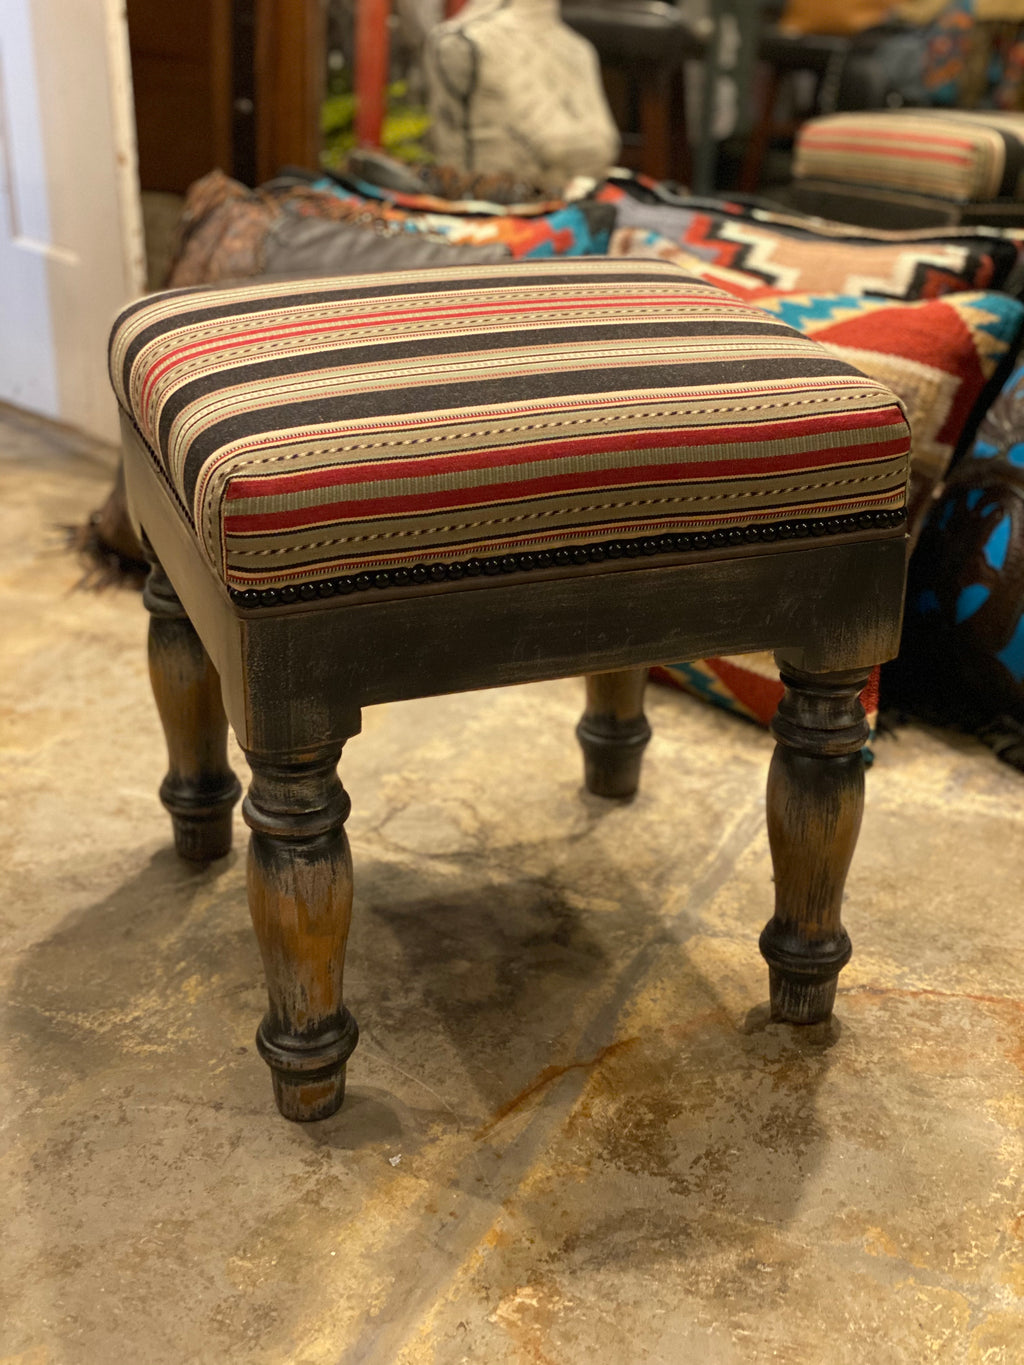 Antique square ottoman with striped fabric